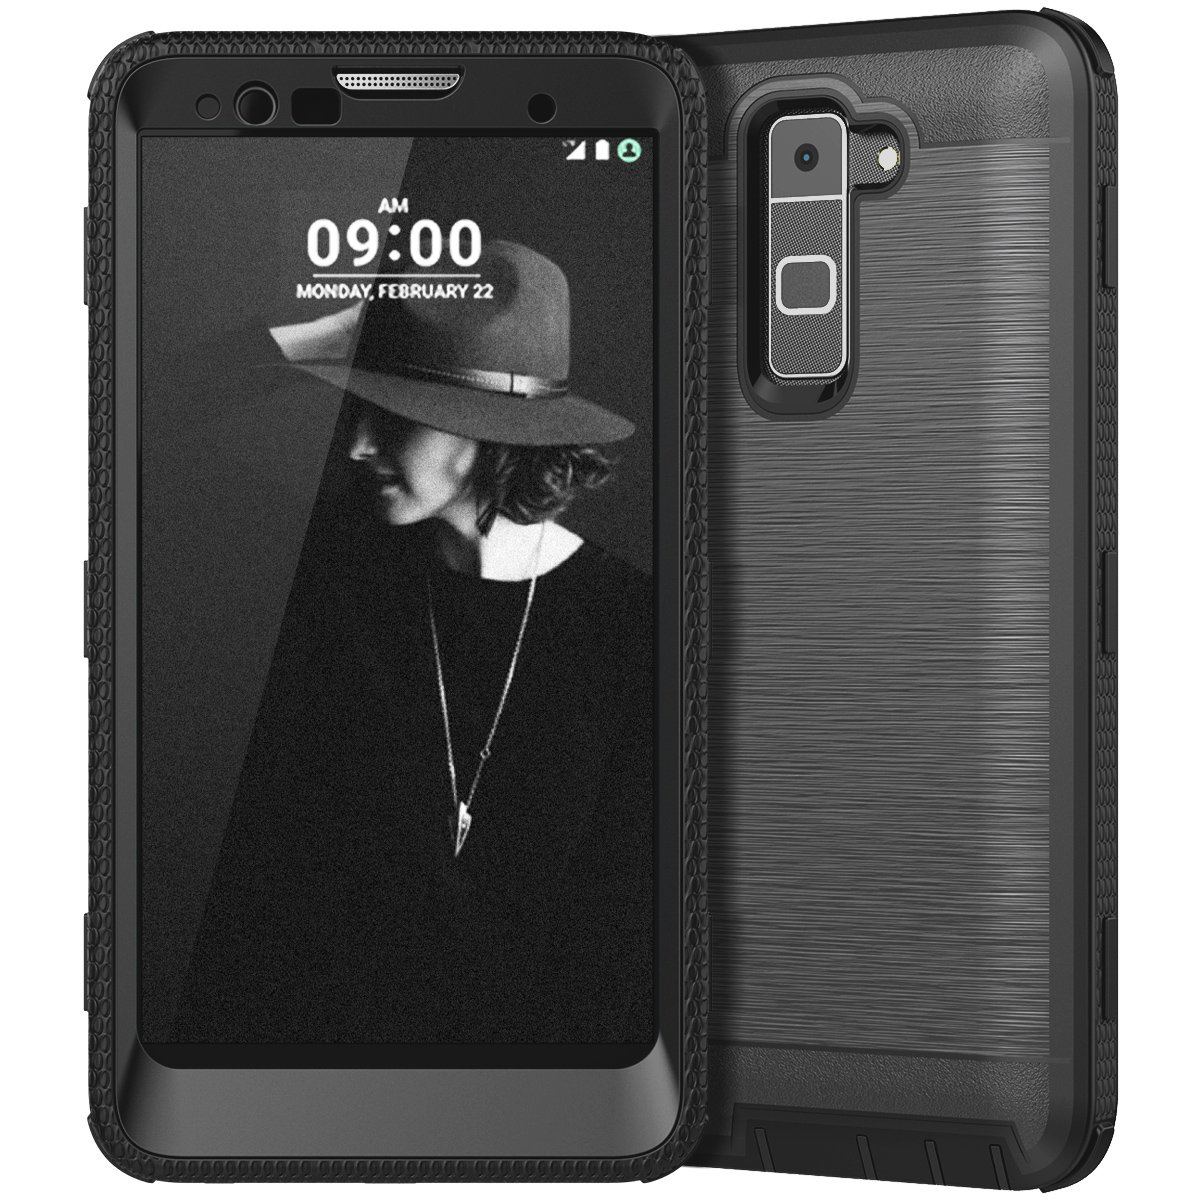 LG Stylo 2 Case, LG Stylo 2 Plus Case, CinoCase Heavy Duty Rugged Armor Protective Case Hybrid TPU Bumper Shockproof Case with Brushed Metal Texture Hard PC Back for LG Stylo 2(LS775)/Stylus 2 Black